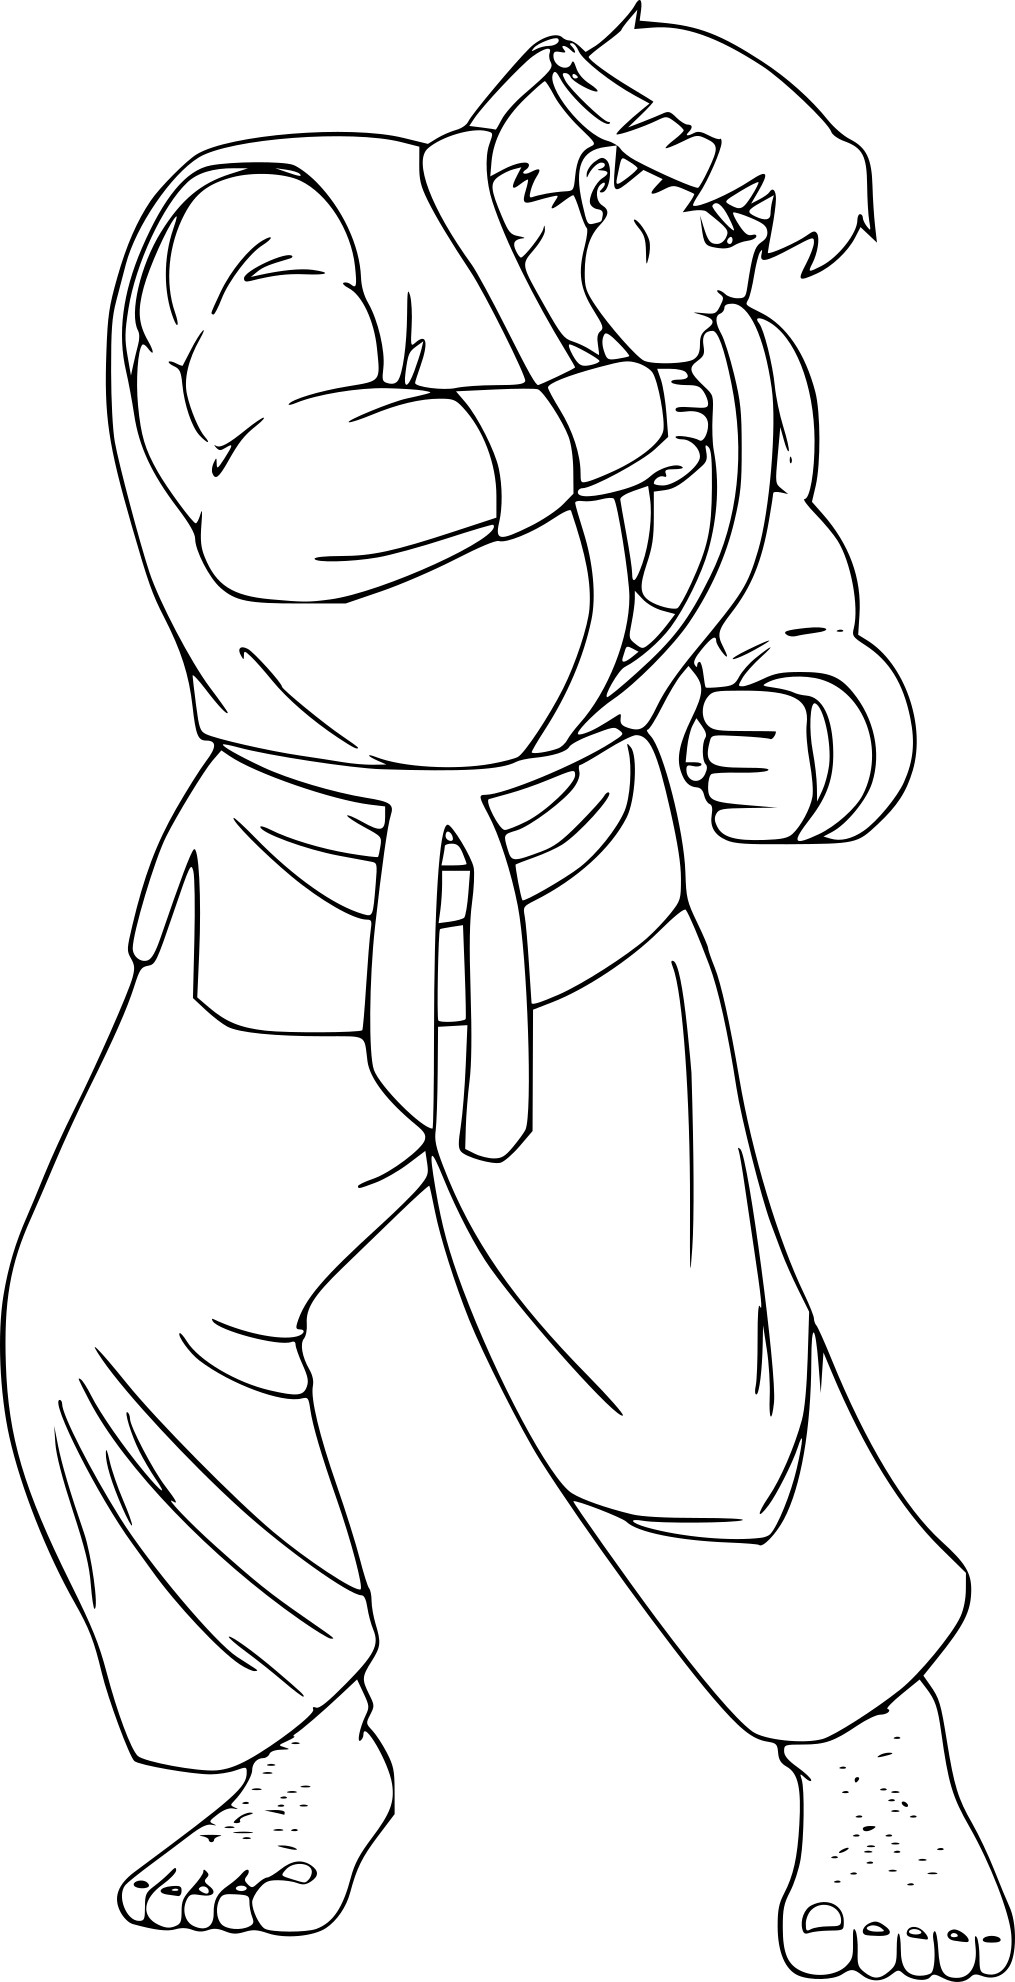 Coloriage Street Fighter À Imprimer tout Dessins A Colorier